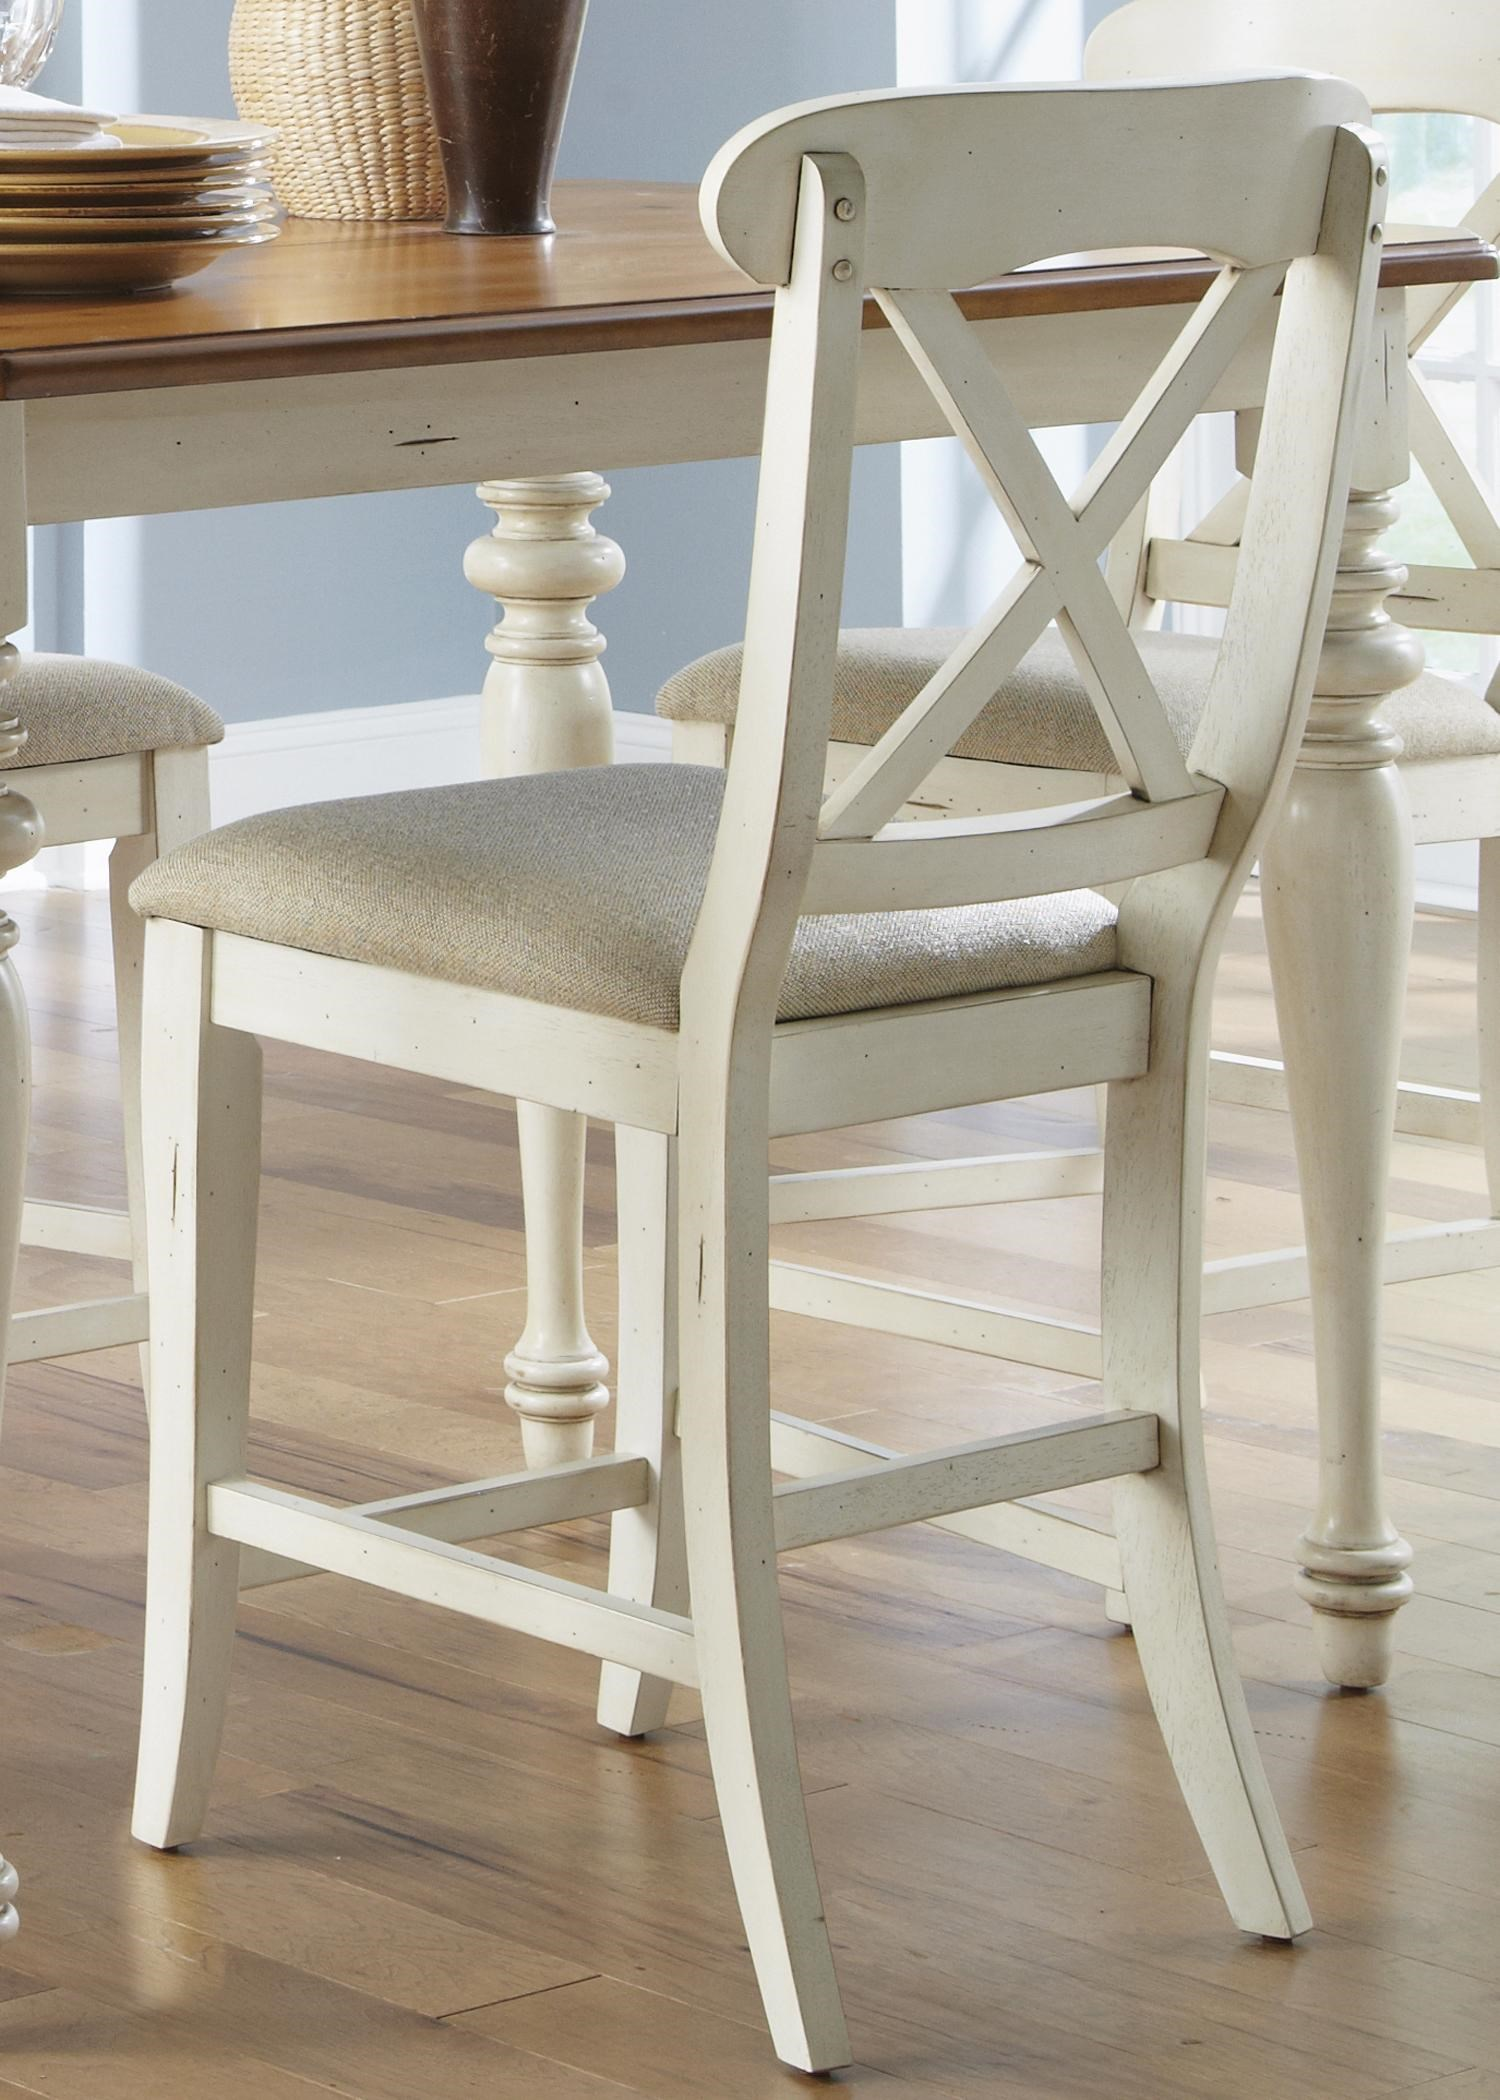 liberty furniture ocean isle xback counter height dining chair with upholstered seat - Counter Height Chairs